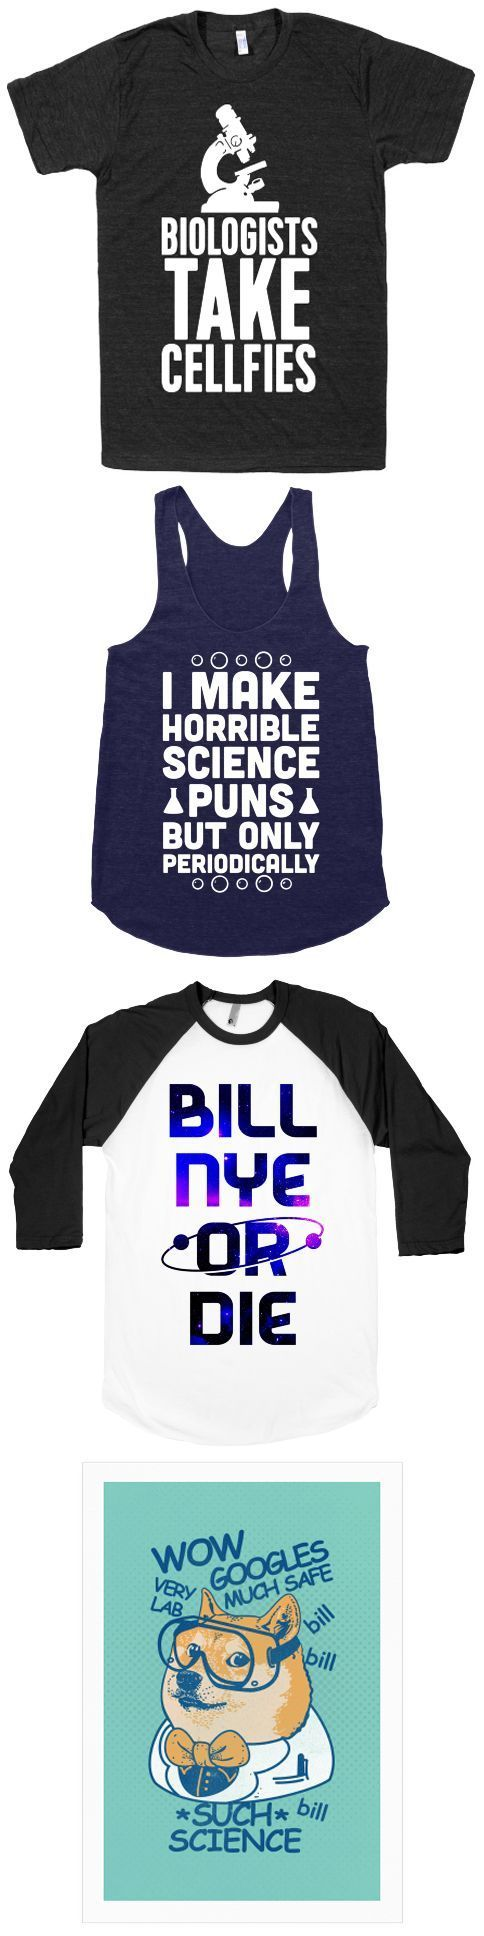 If you love everything science this collection is for you